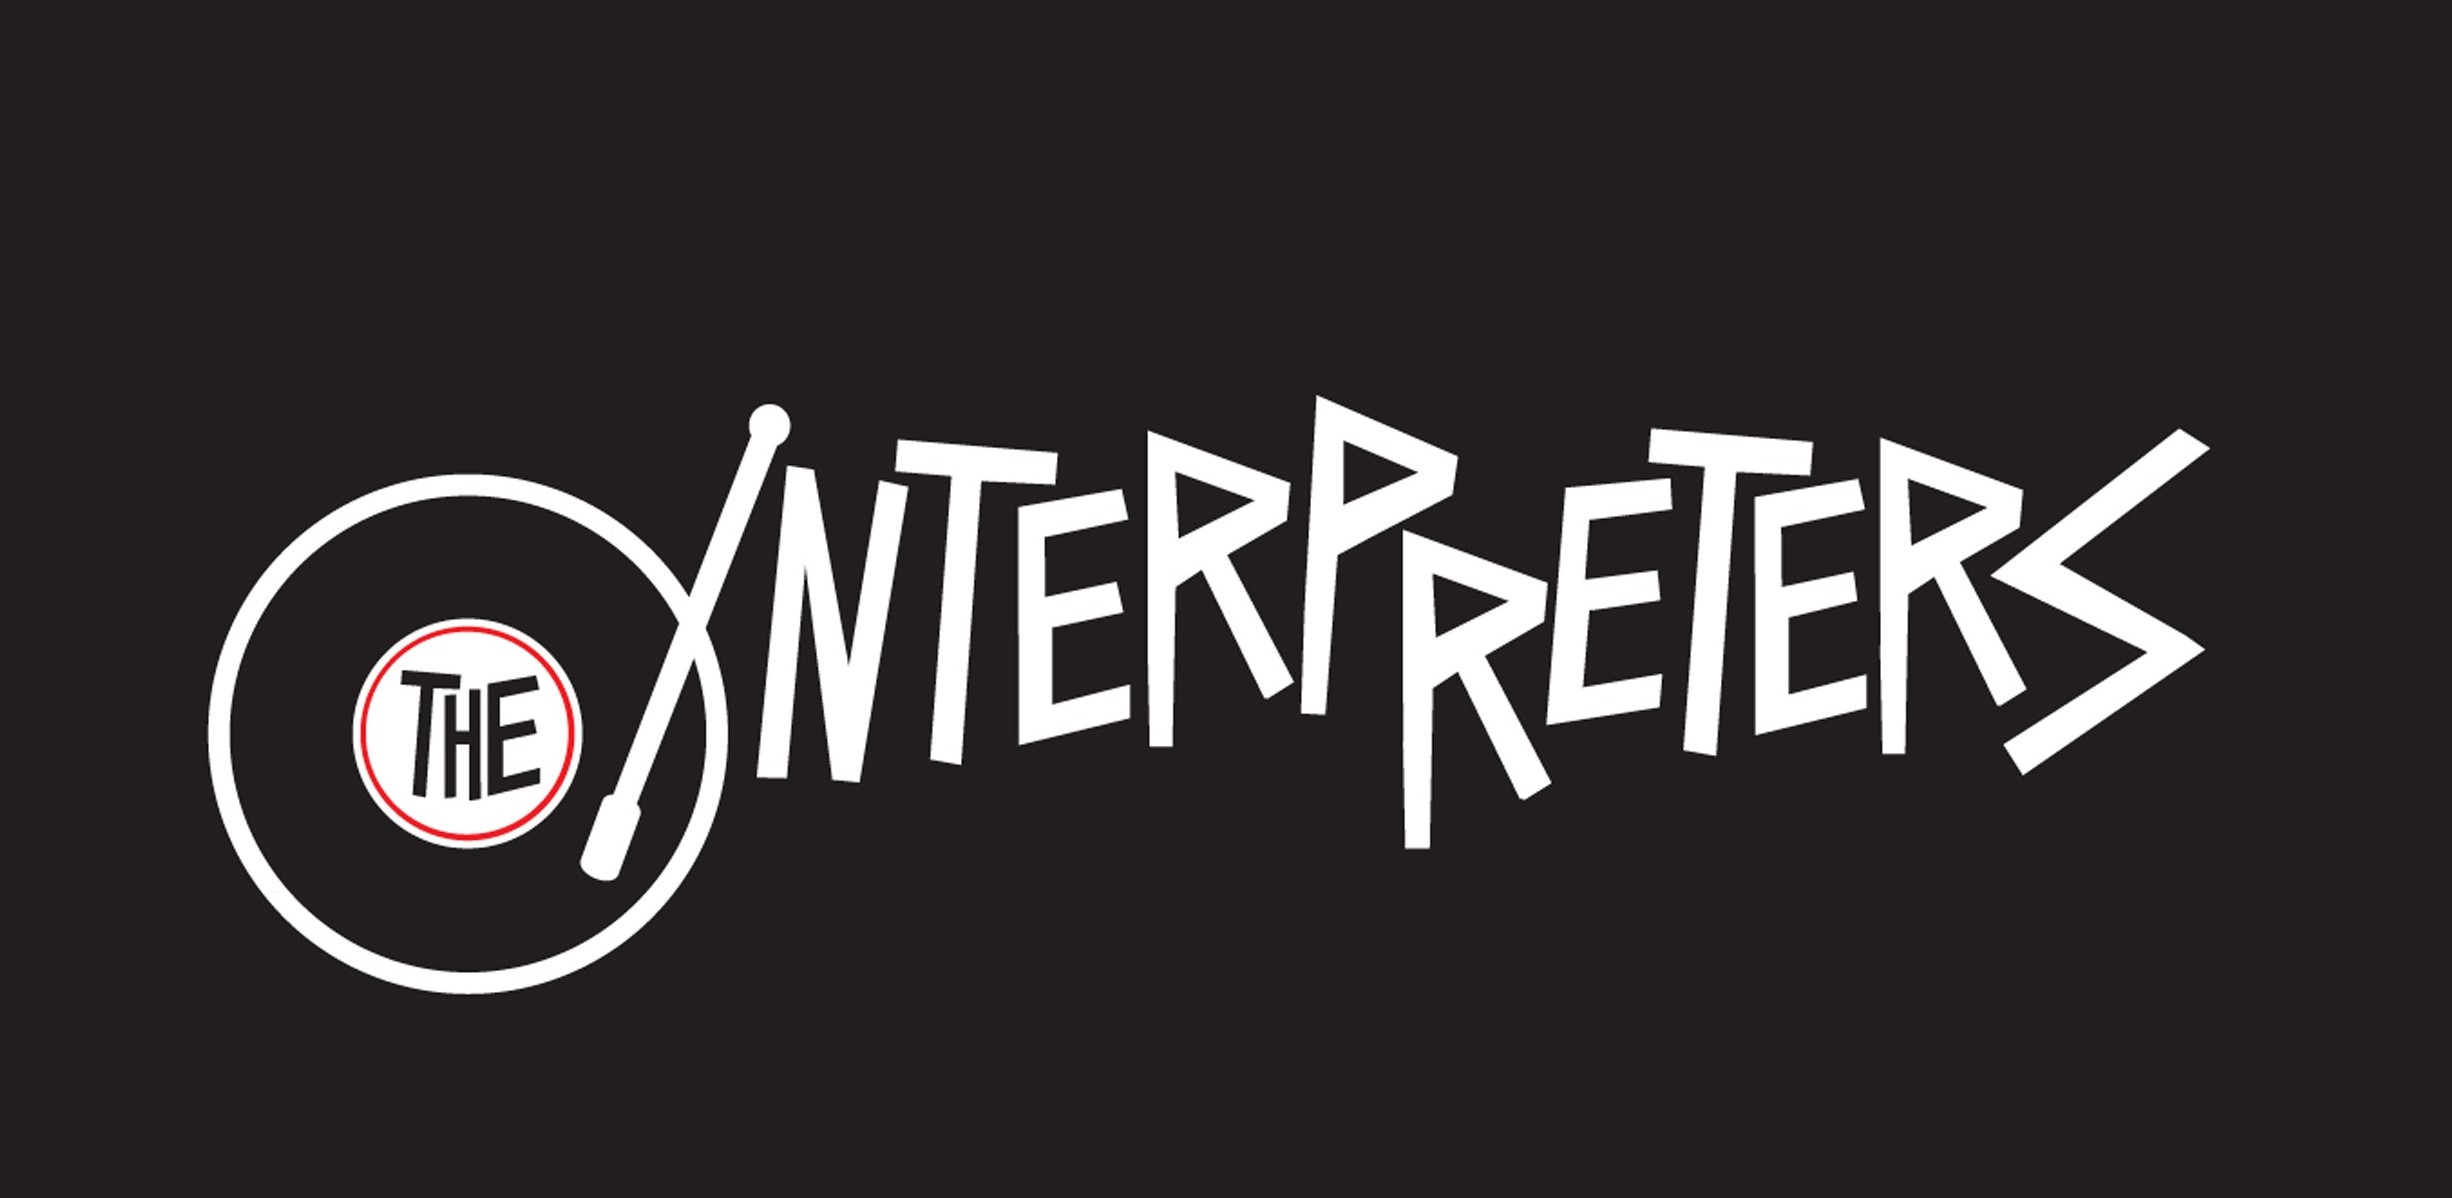 The Interpreters banner image